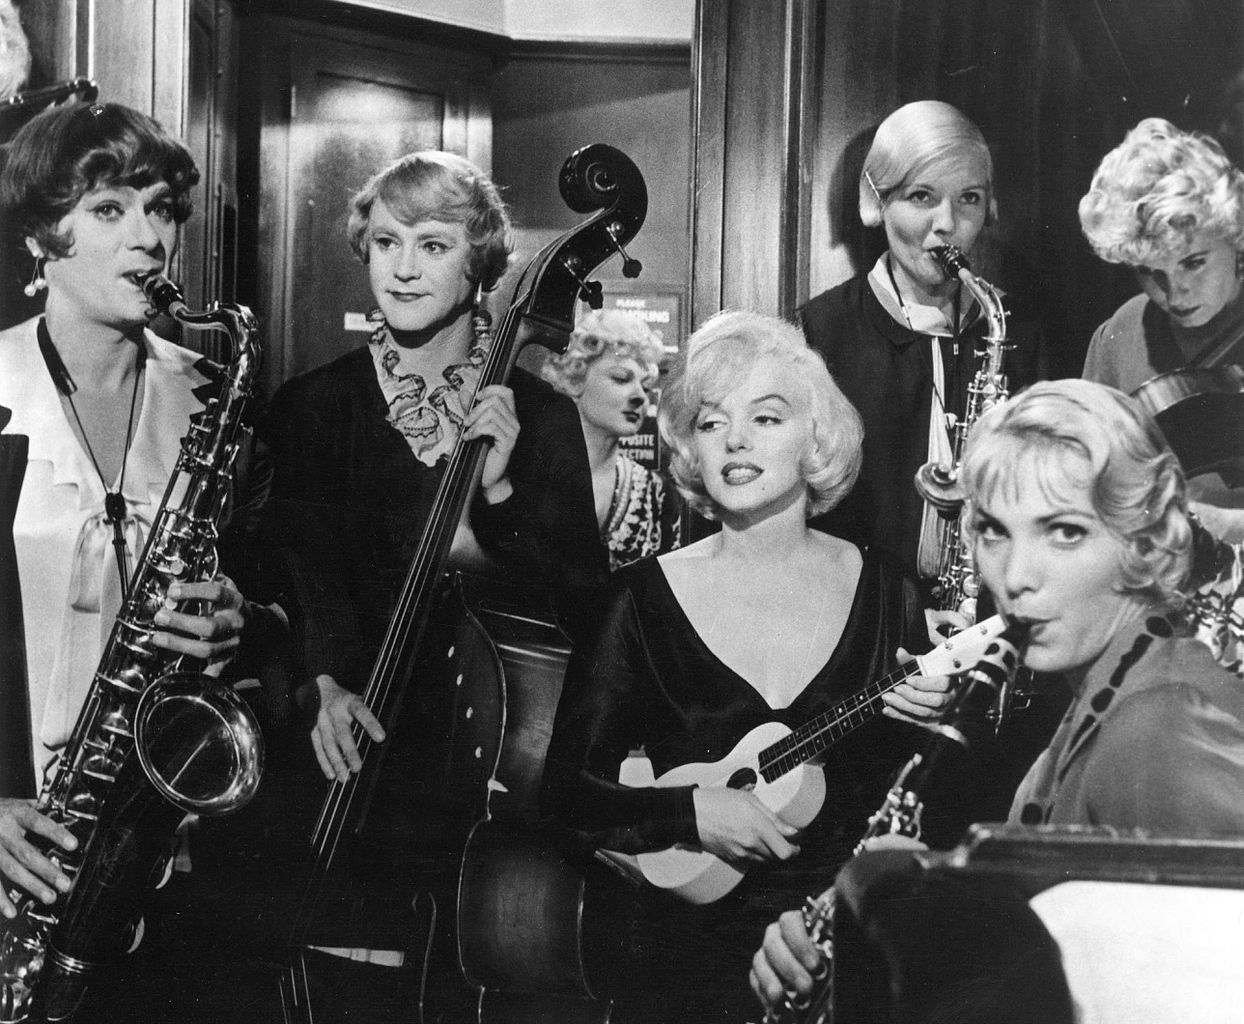 File:Some like it hot film poster.jpg - Wikimedia Commons